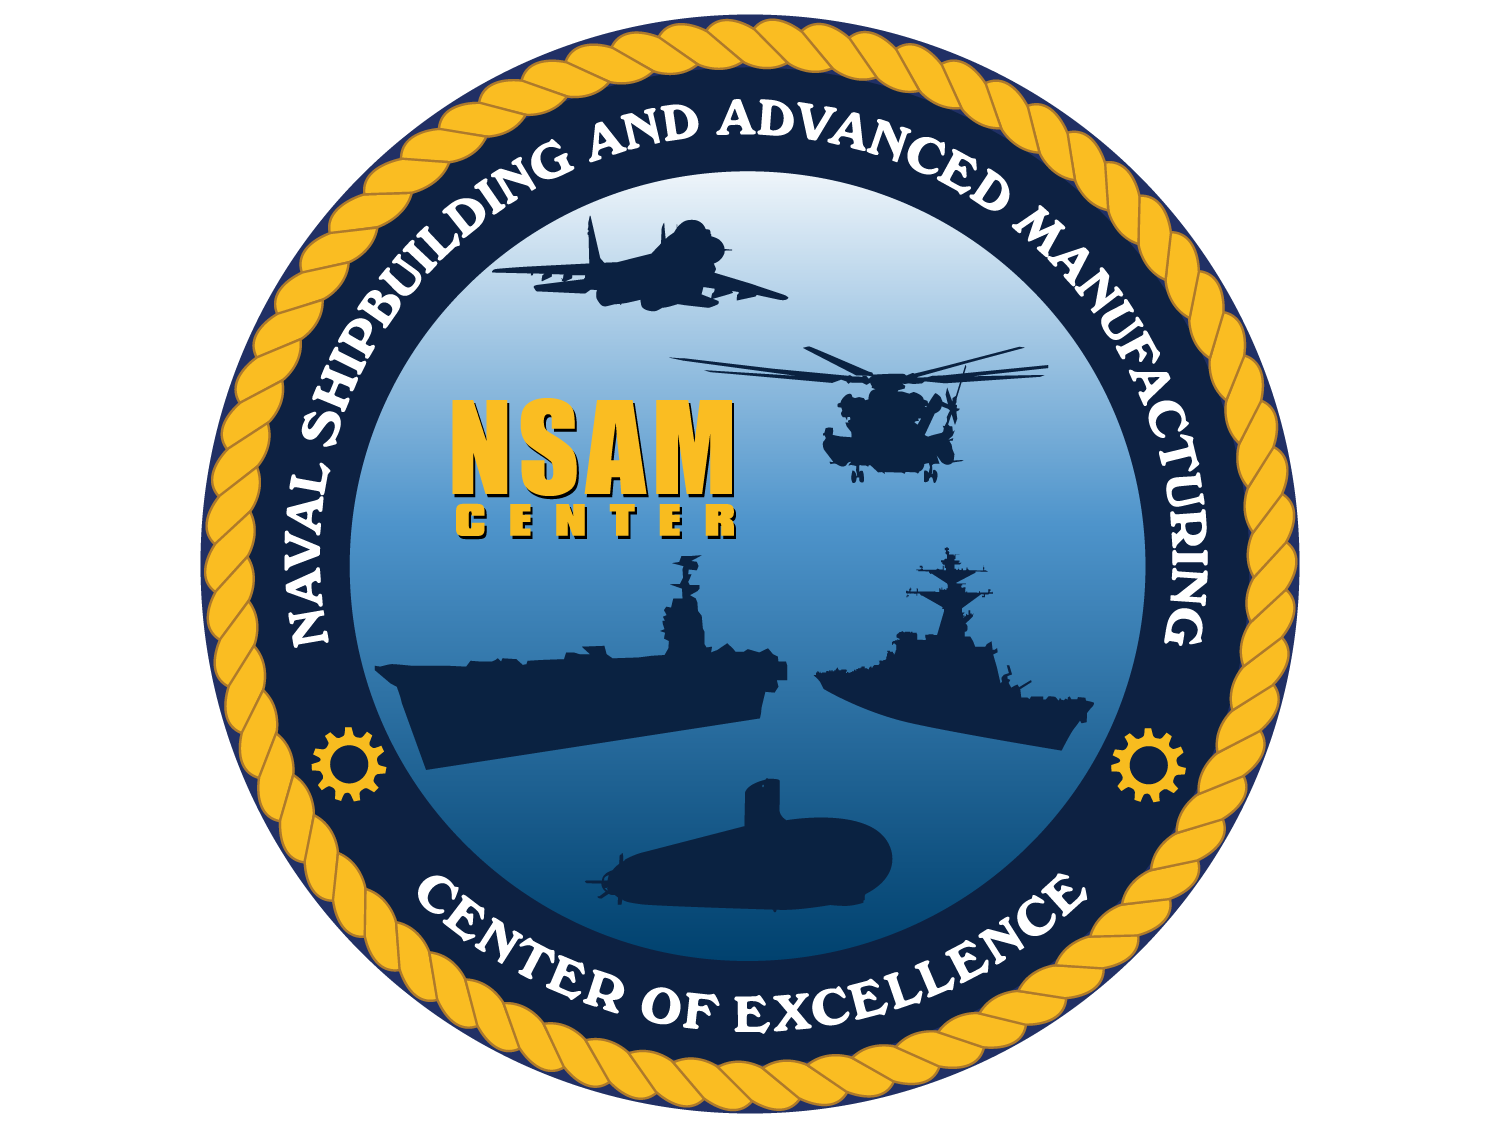 Naval shipbuilding and advanced manufacturing center of excellence logo